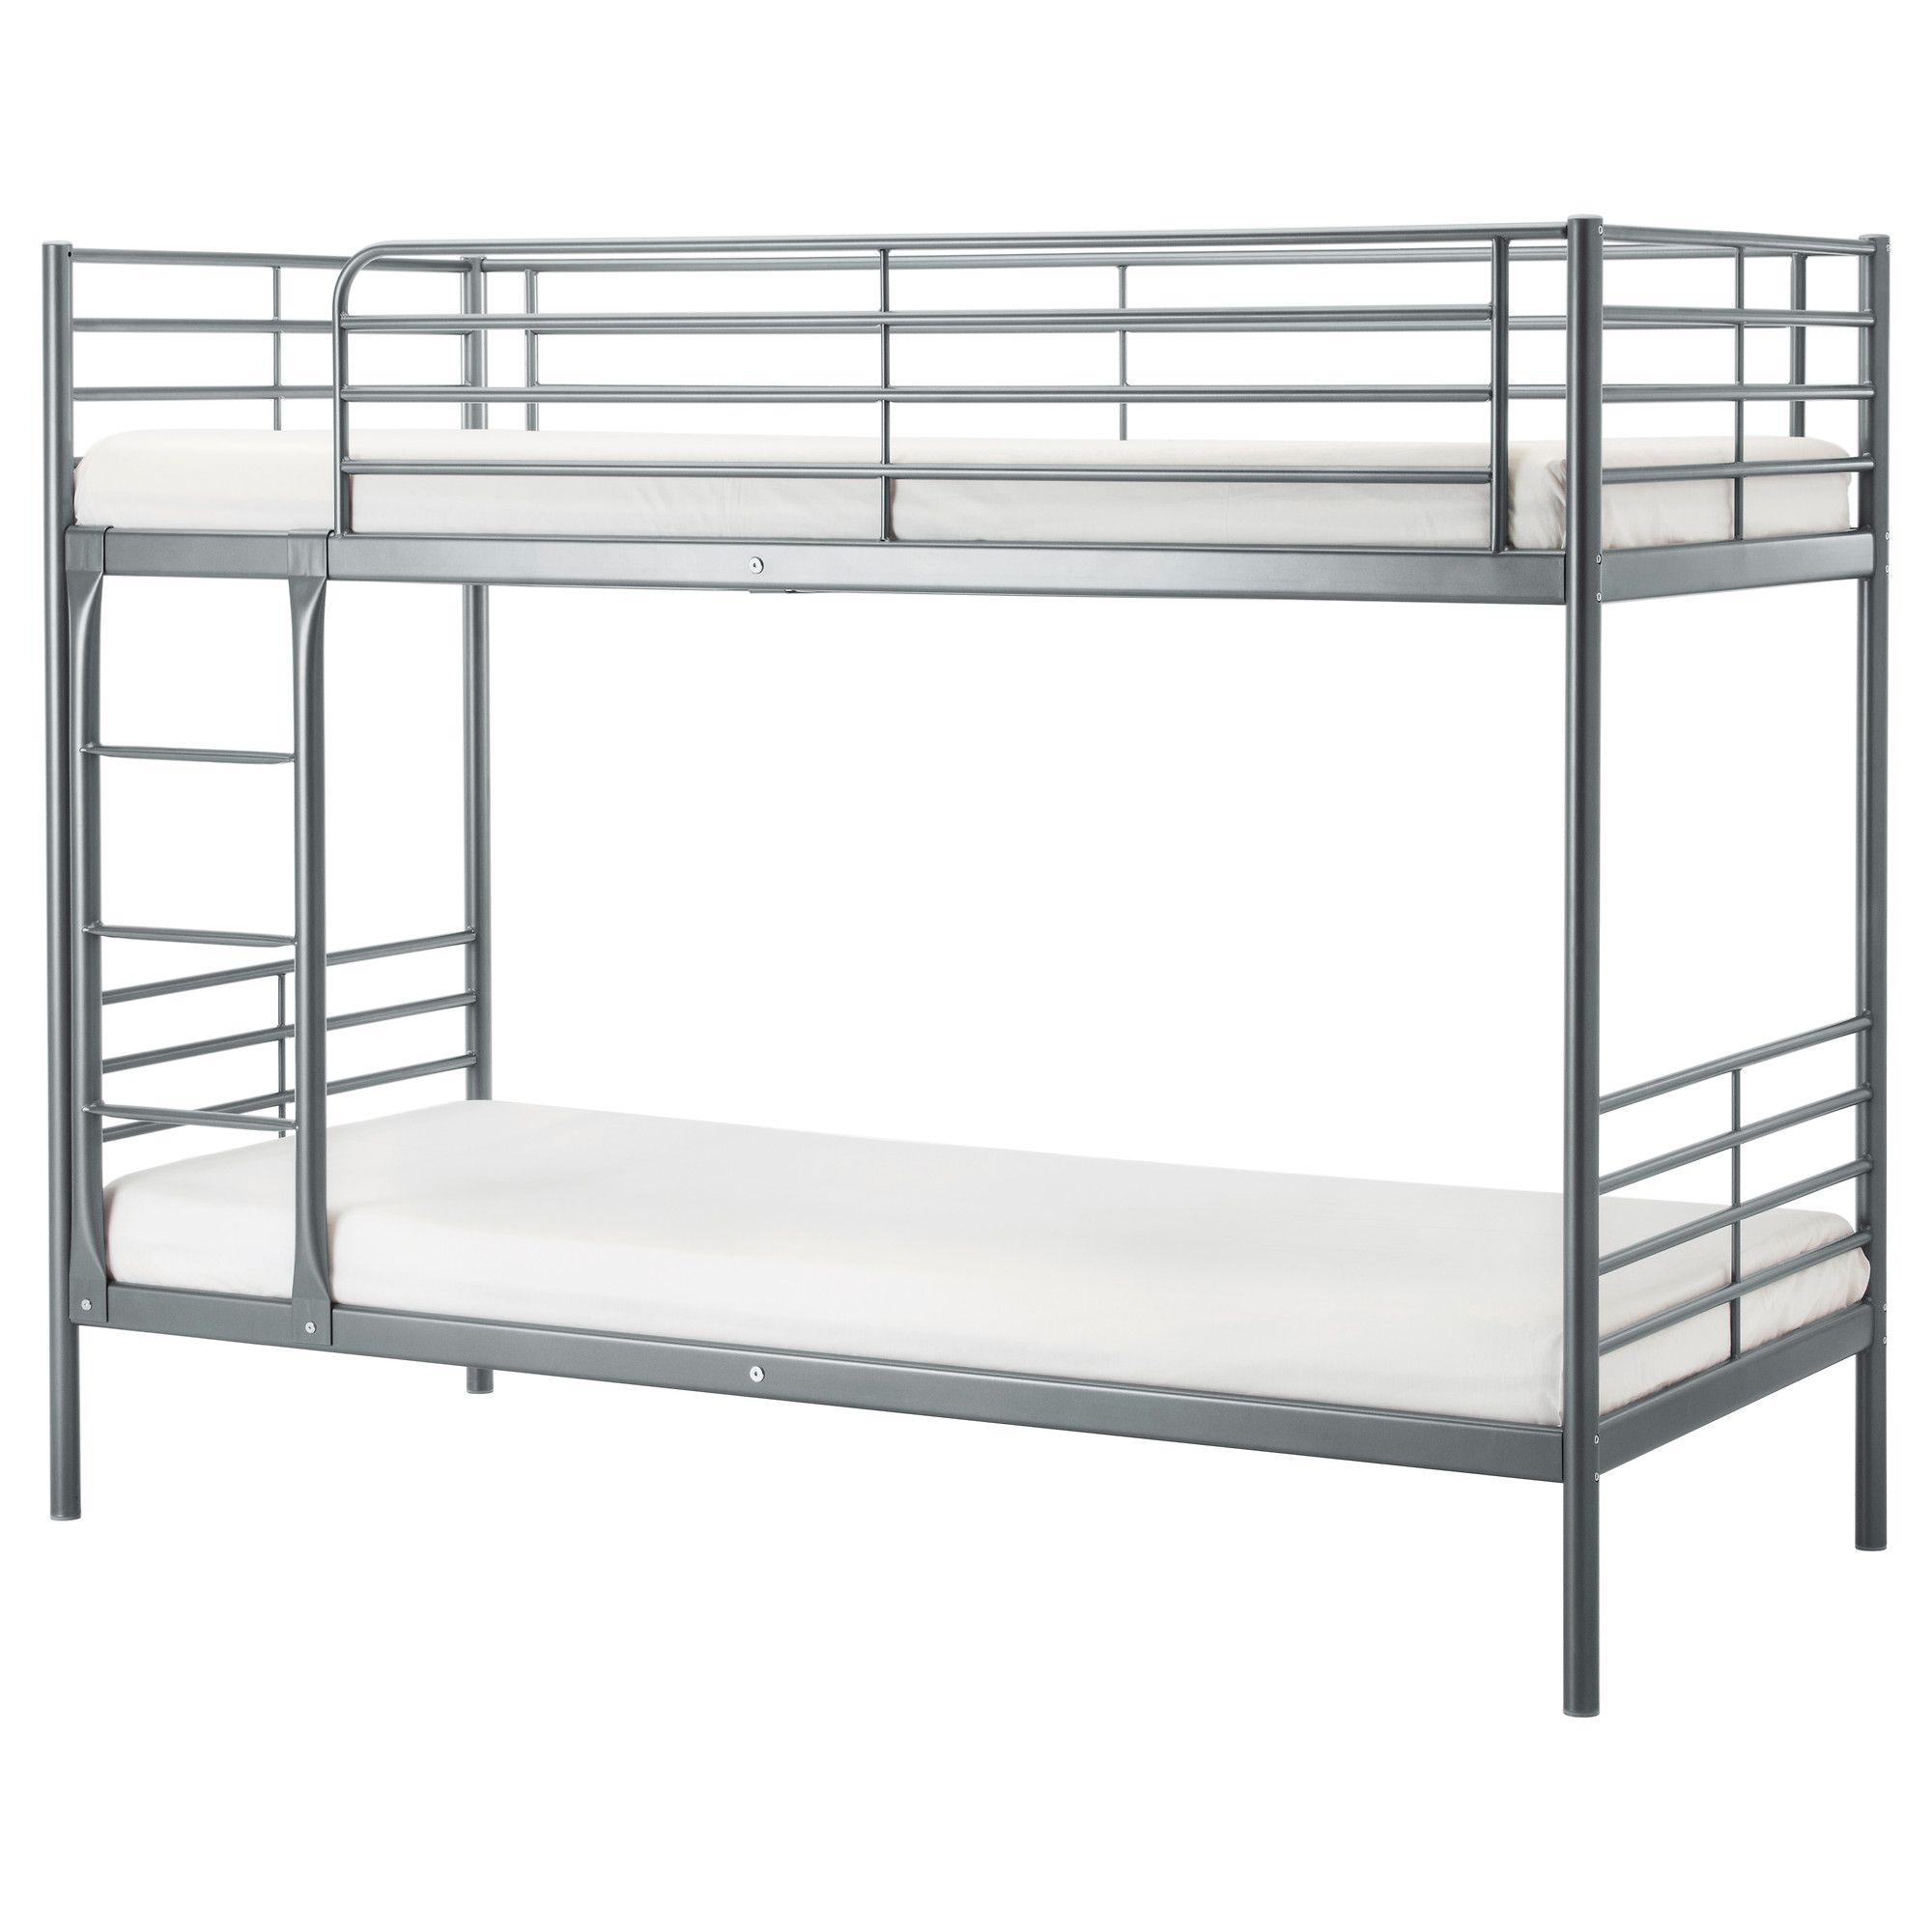 SvÄrta Bunk Bed Frame Ikea Liked This Pin And Eventually Found A Similar To On Ksl For 30 Woo Hoo Score Sc